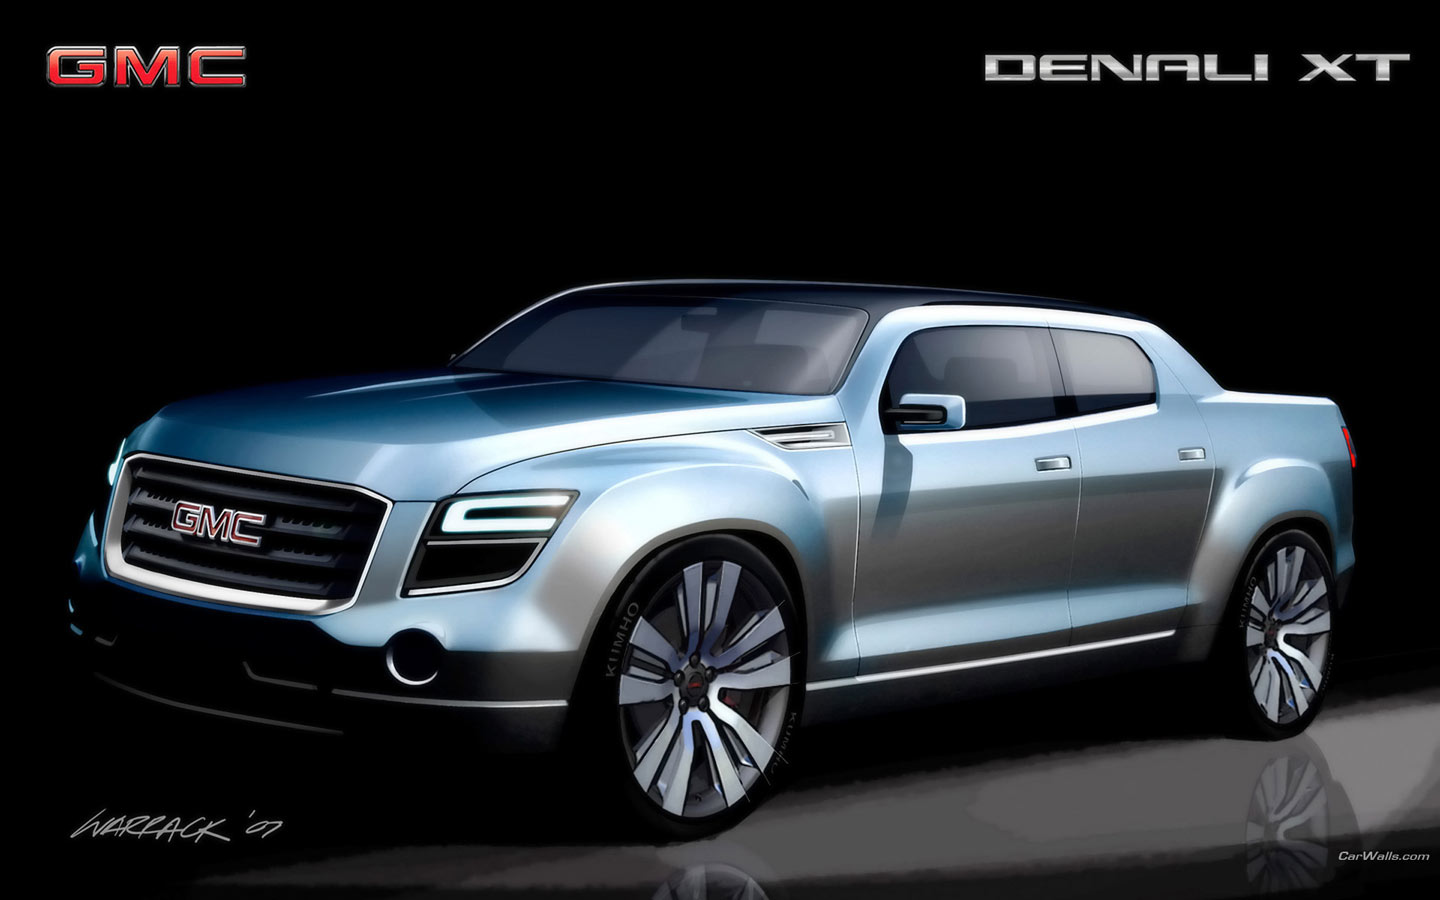 2019 GMC Denali XT Concept photo - 1